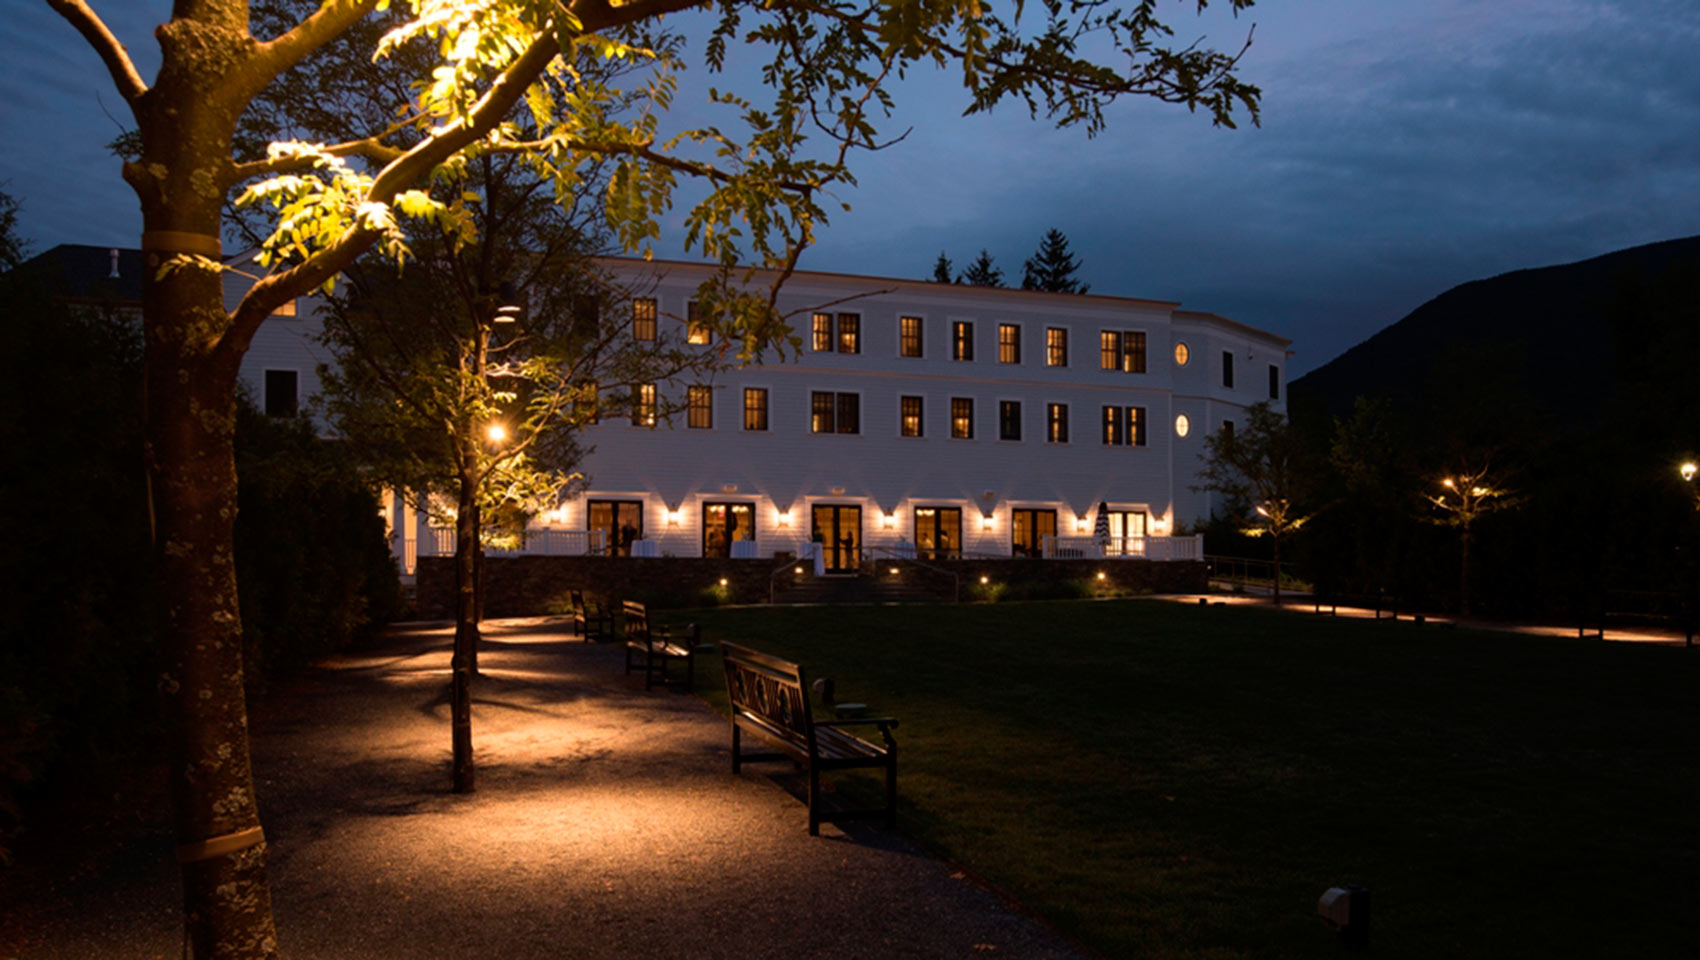 Taconic Hotel Green at Night